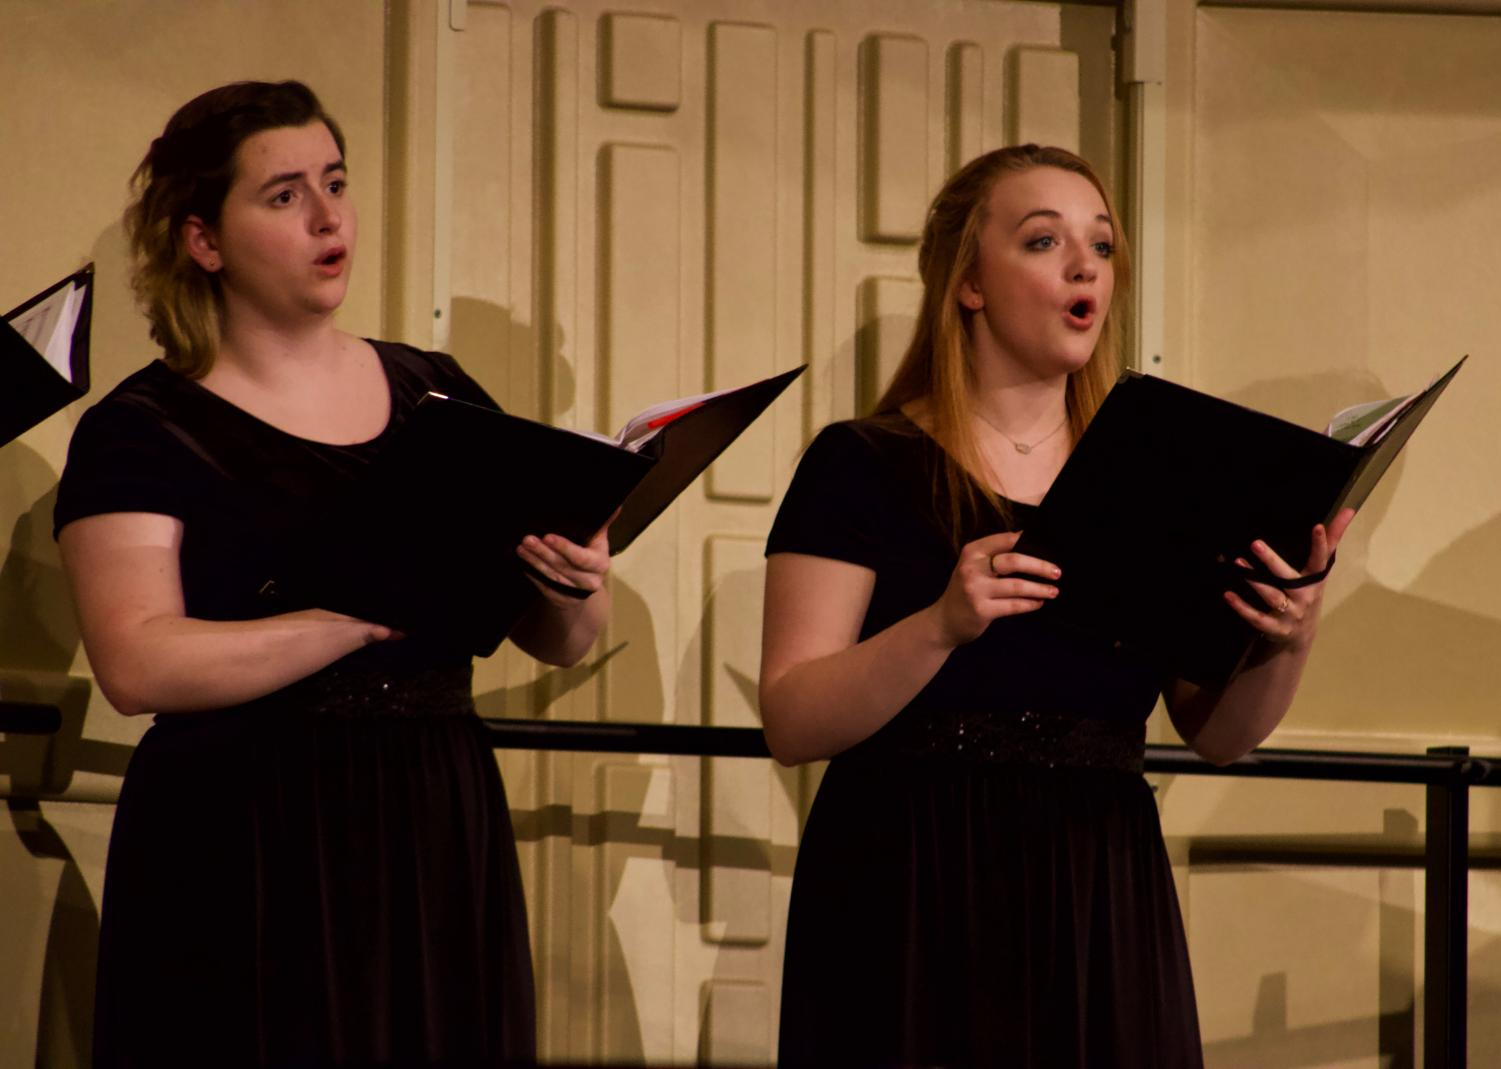 Senior Rose Ulrich and junior Celeste Kincaid singing during their performance held on March 10. Their concert was held in Rice Auditorium. The performers consists of students, faculty, and community members.